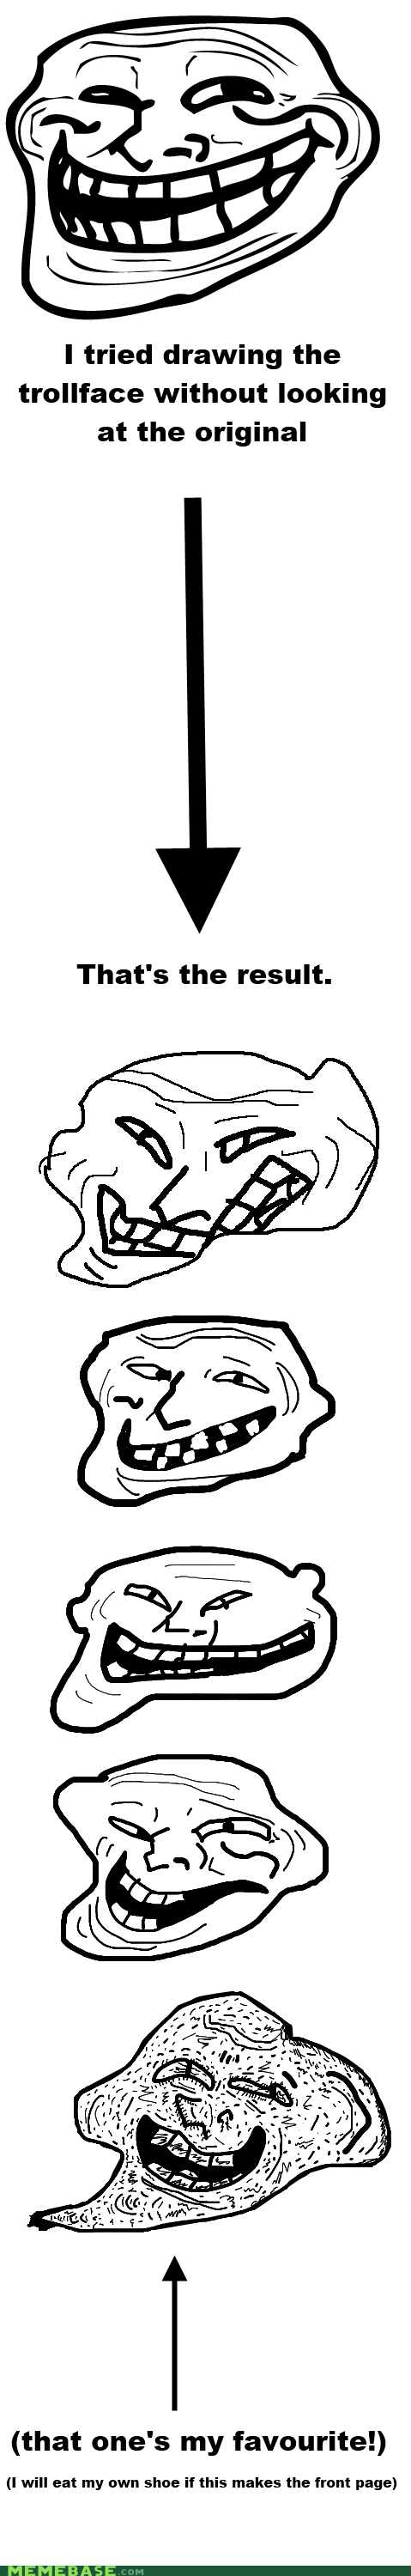 blind drawing EAT YOUR SHOE mods insist shoes troll face ugly - 5508120576